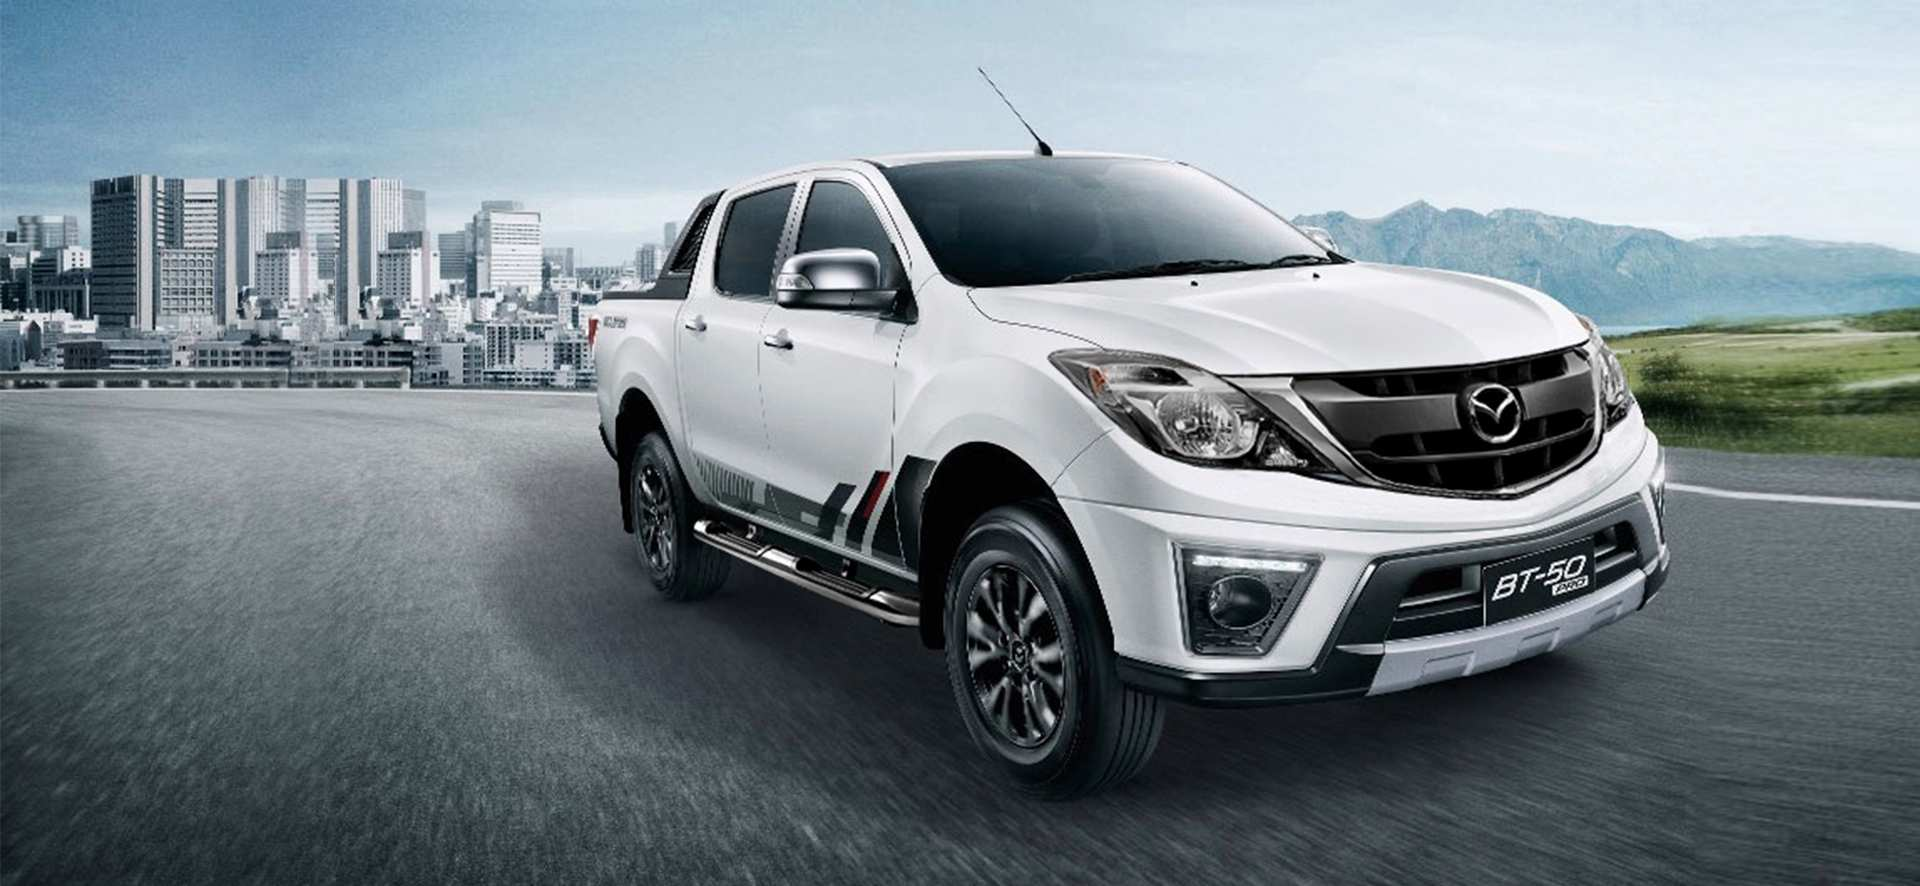 19 Concept of Mazda Bt 50 Eclipse 2020 Pricing with Mazda Bt 50 Eclipse 2020